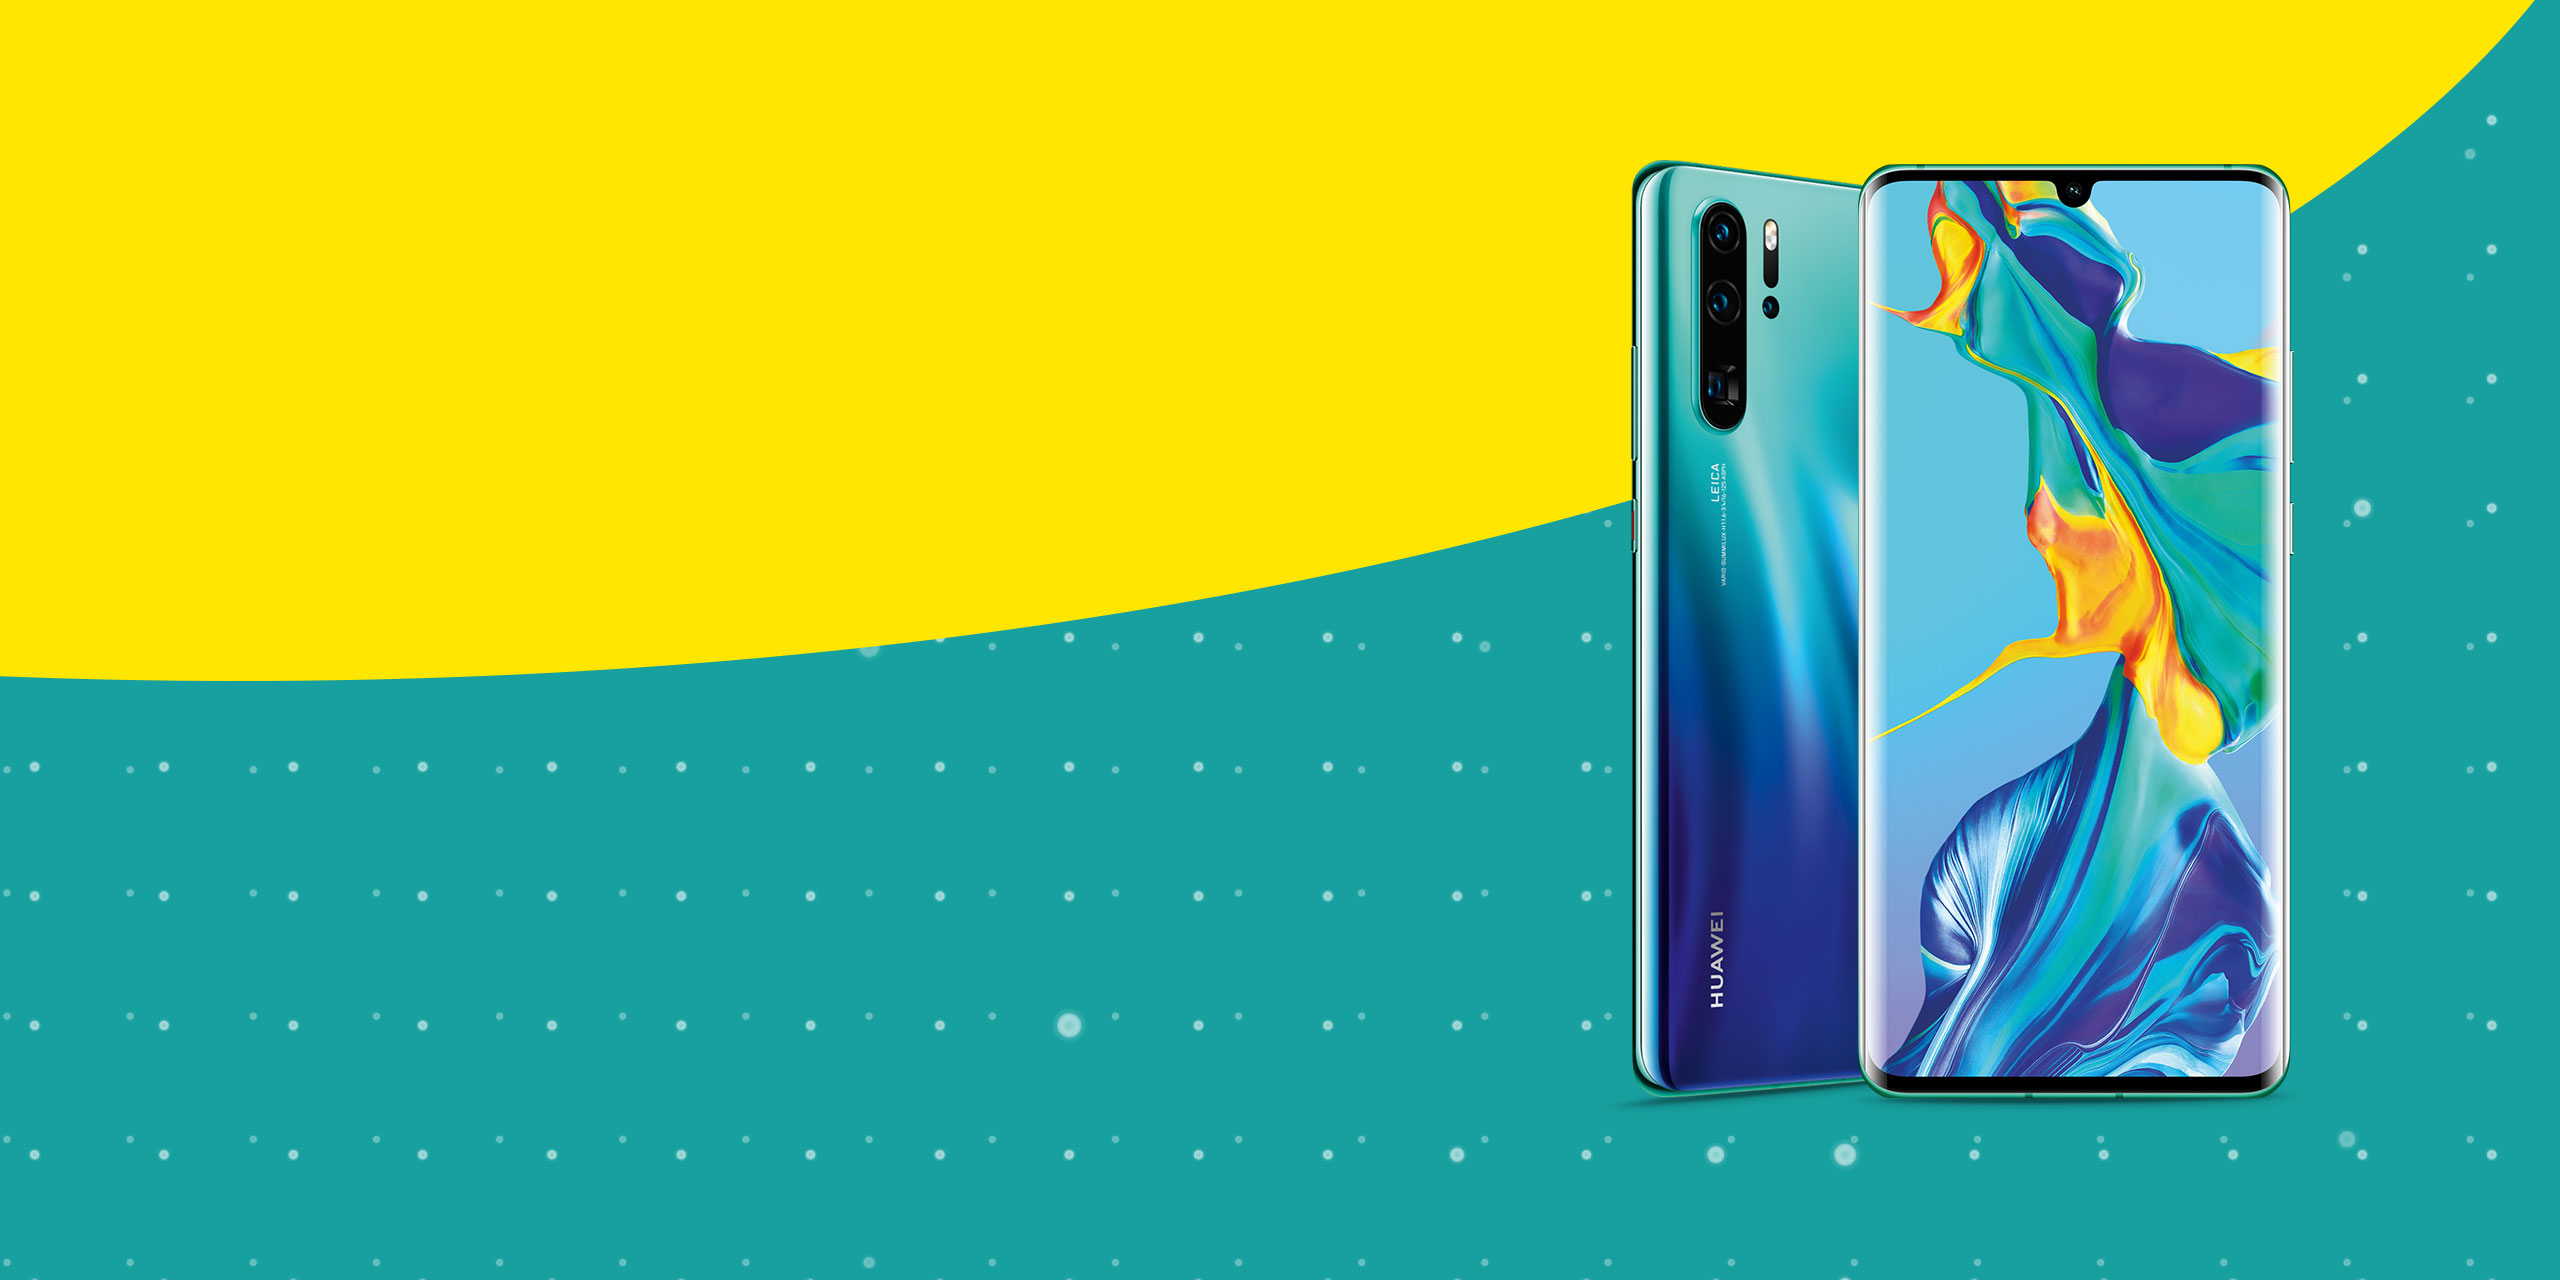 New Huawei P30 on an aqua background